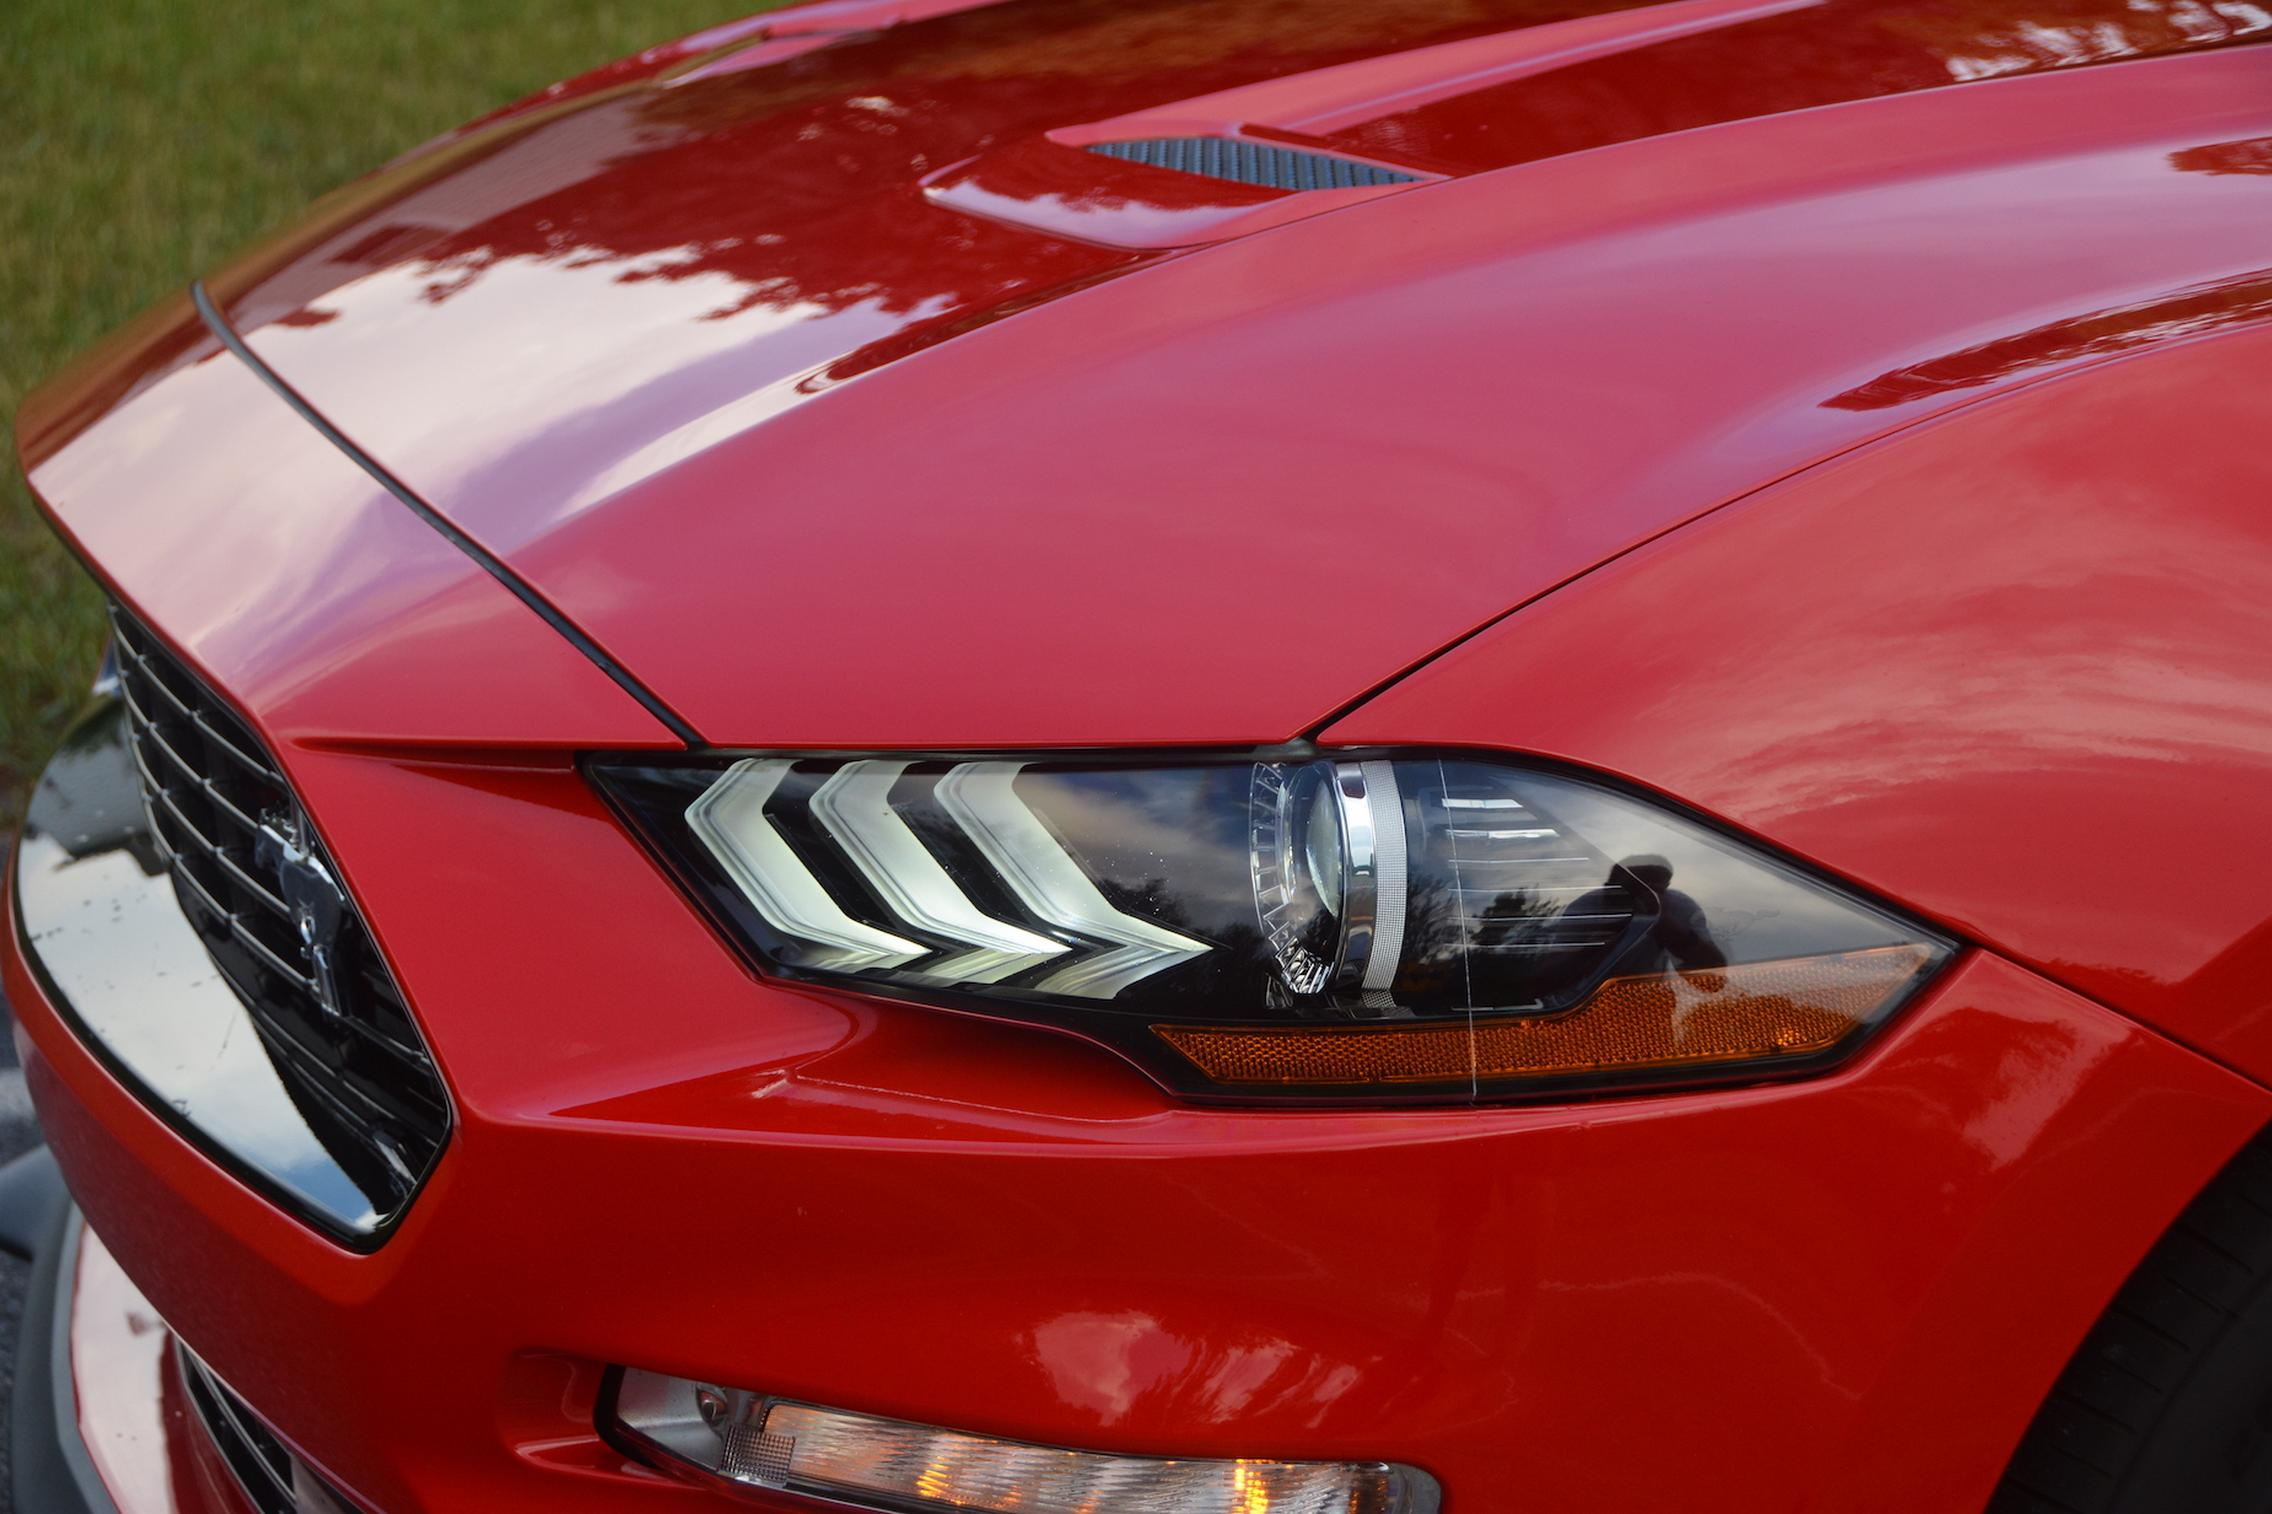 2021 Ford Mustang EcoBoost headlight